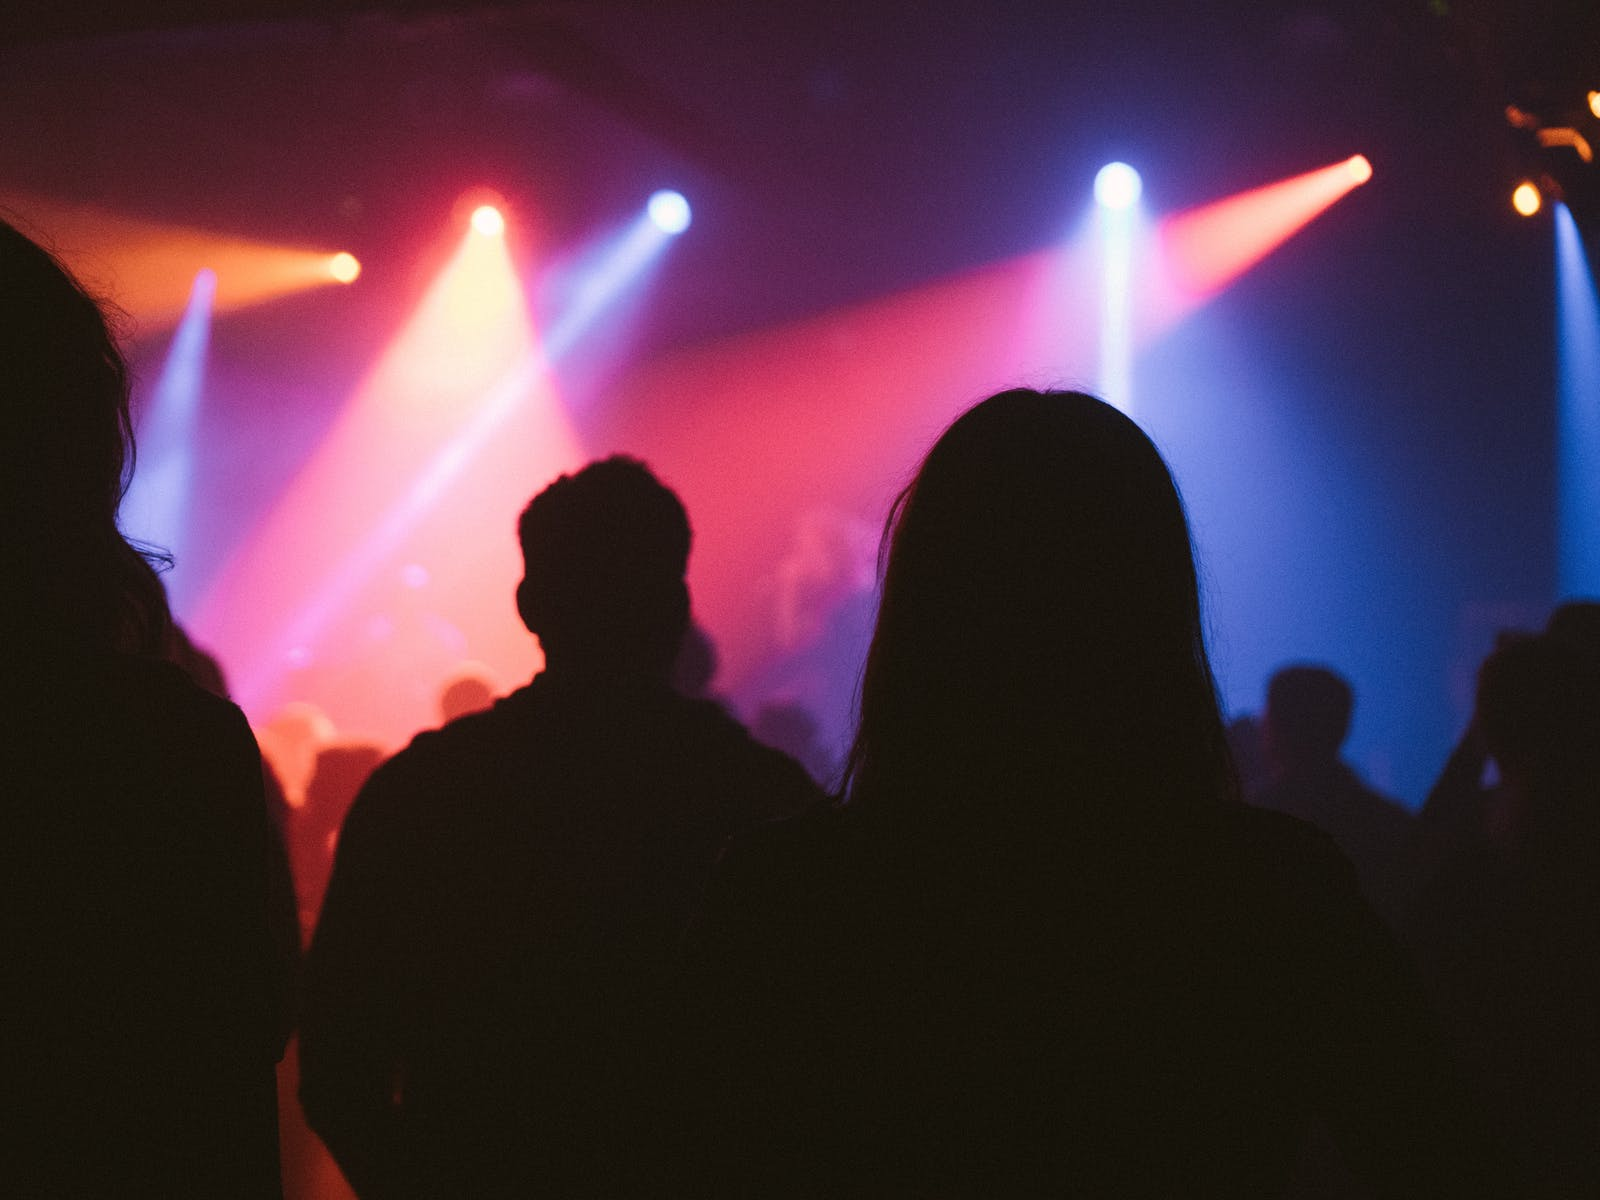 Silhouettes of festival-goers